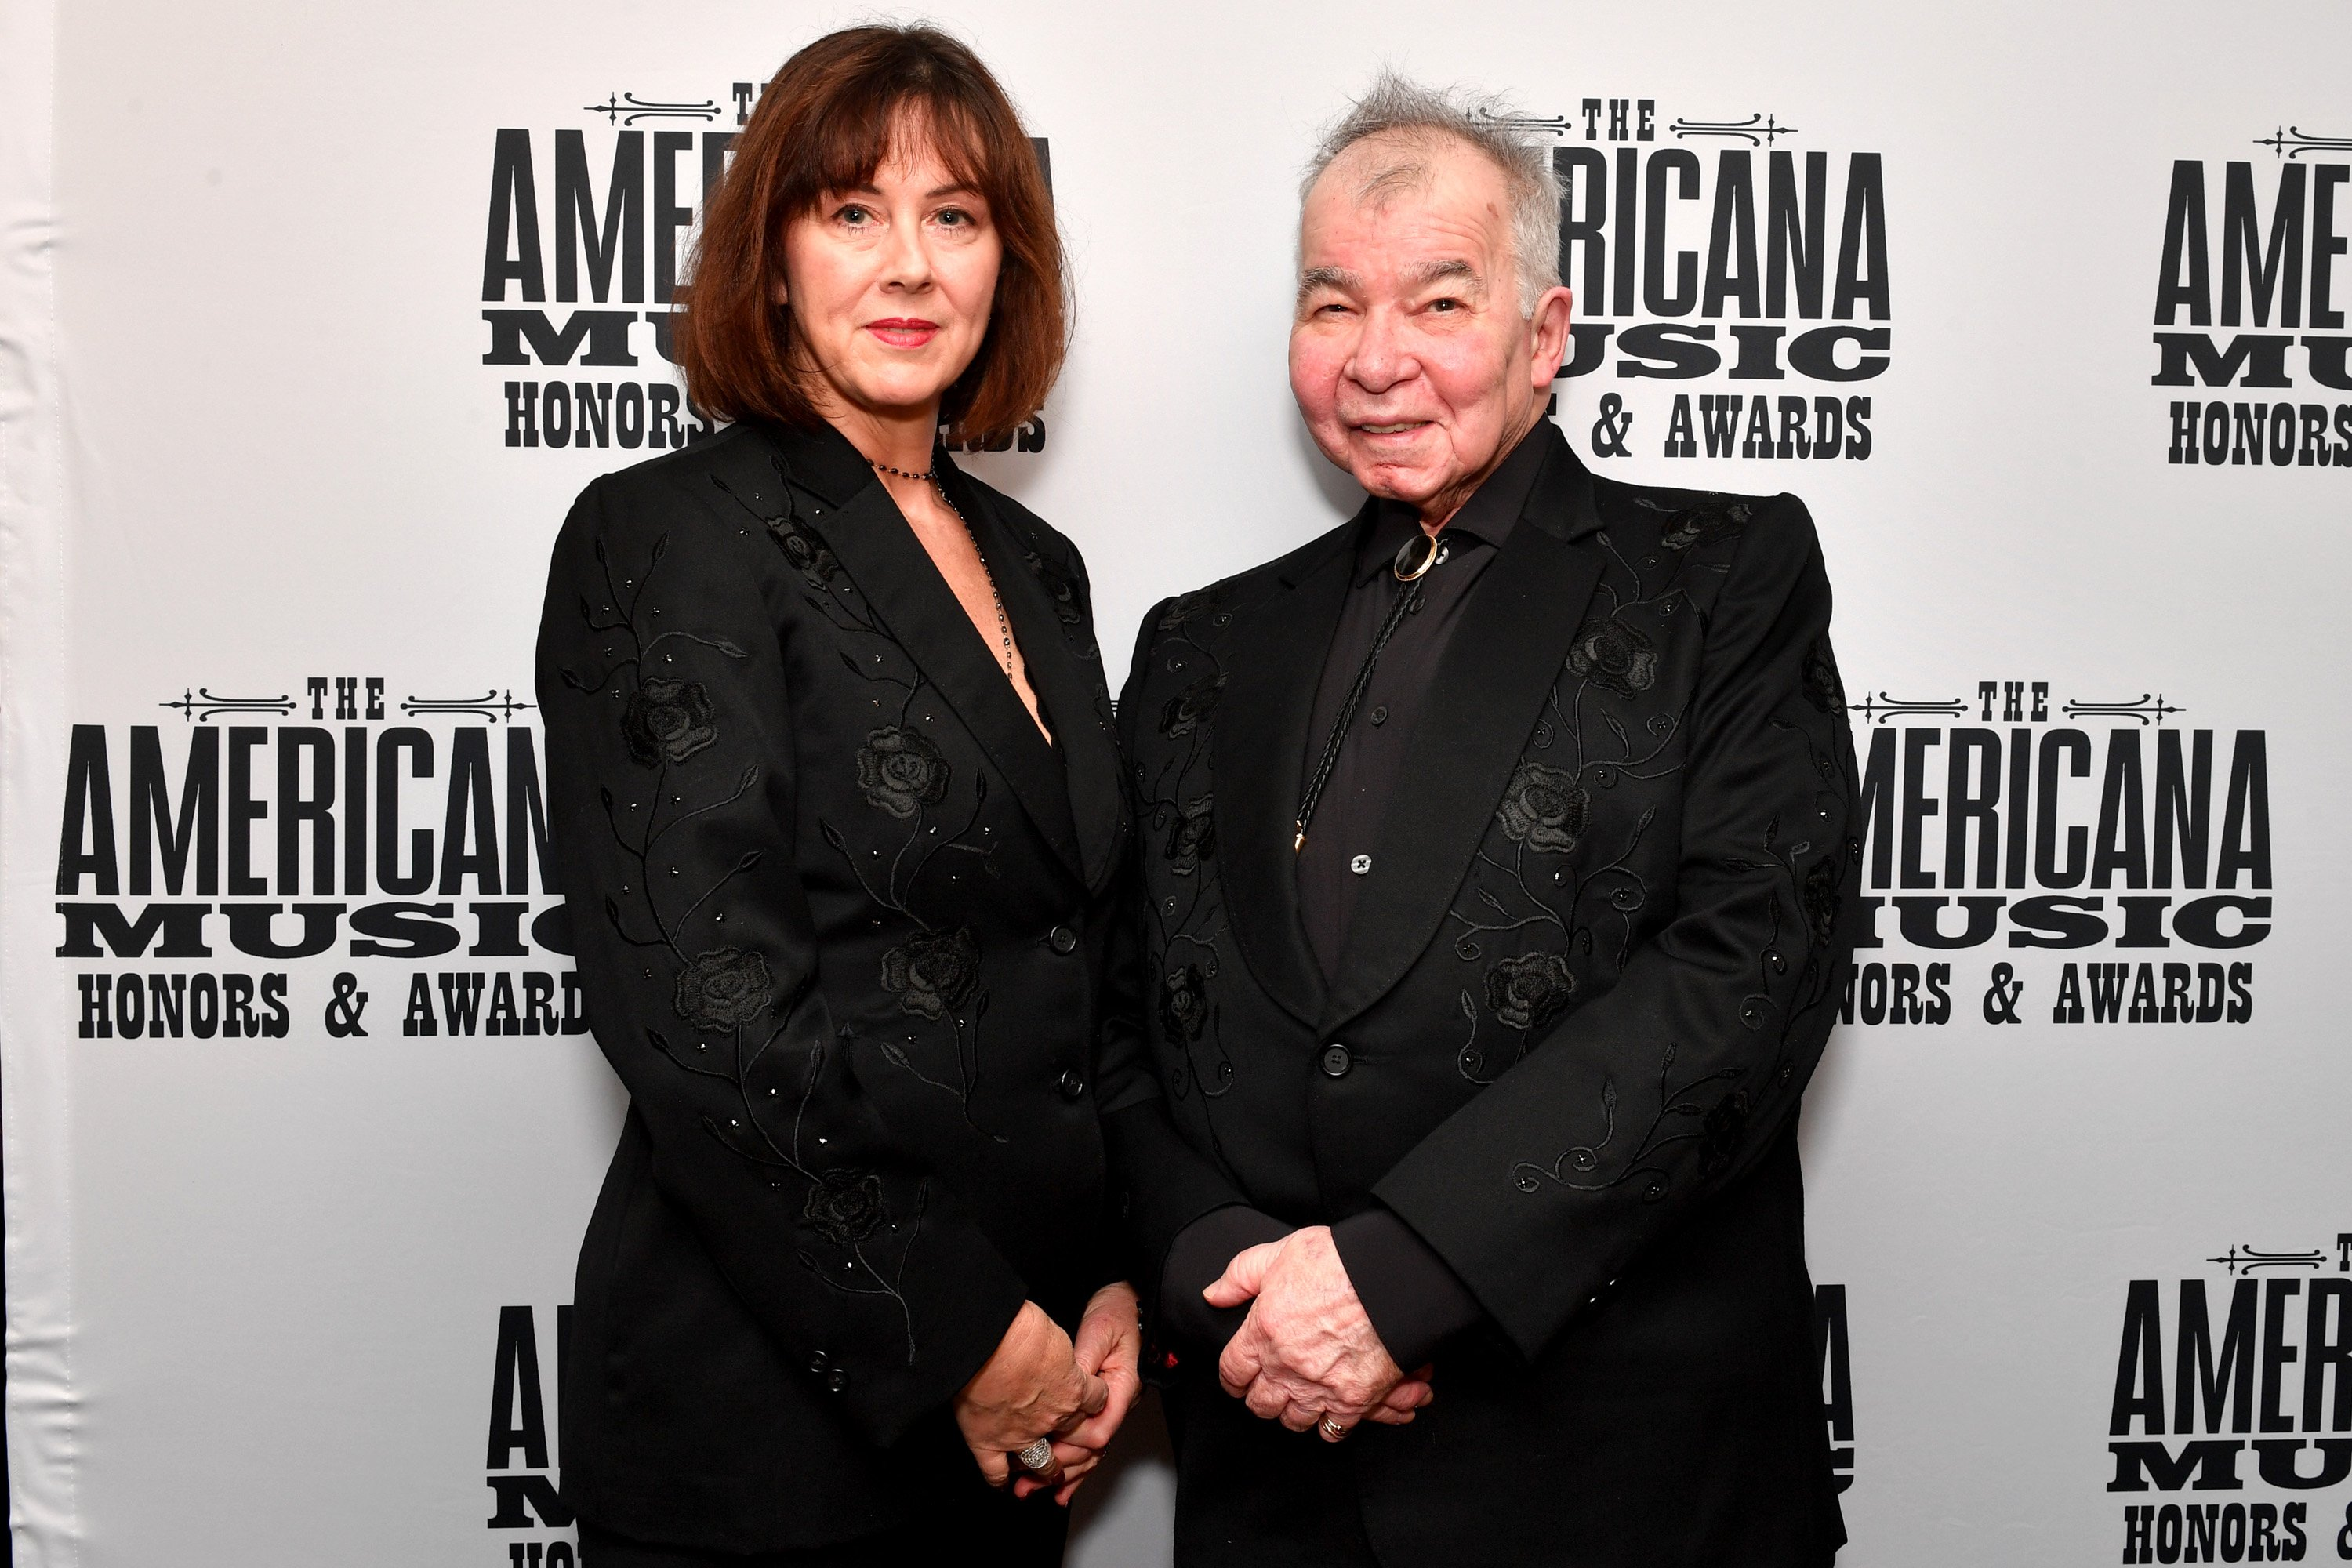 Fiona Prine and John Prine attend the 2019 Americana Honors & Awards on September 11, 2019, in Nashville, Tennessee. | Photo: Getty Images.